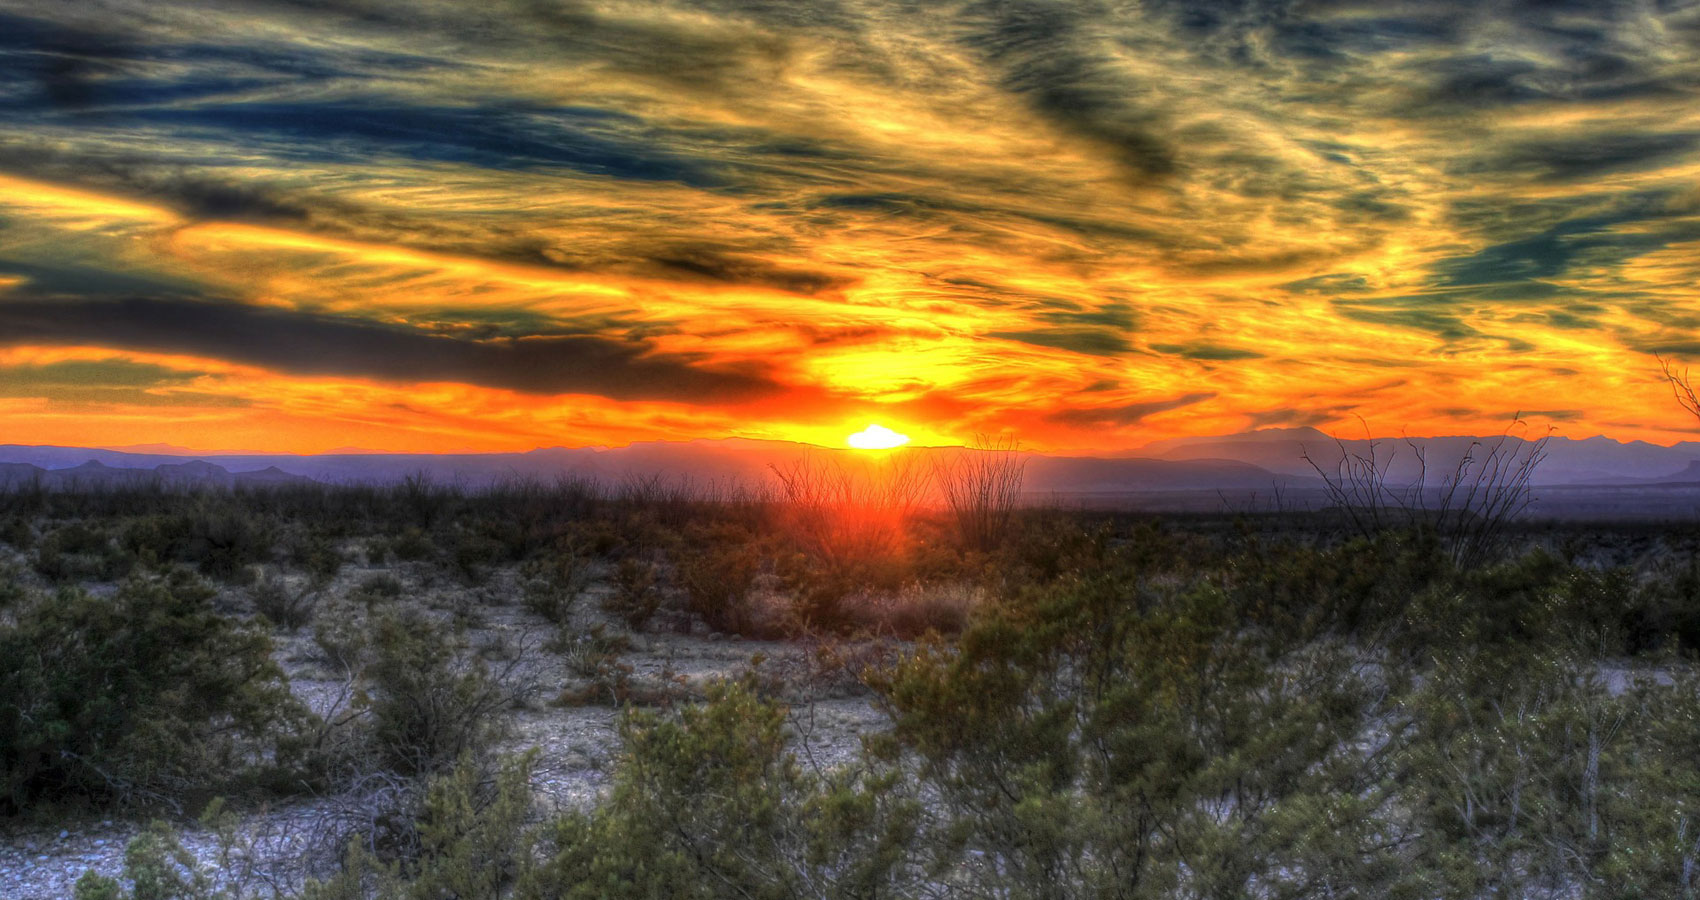 Texas Sunset, written by John R. Cobb at Spillwords.com